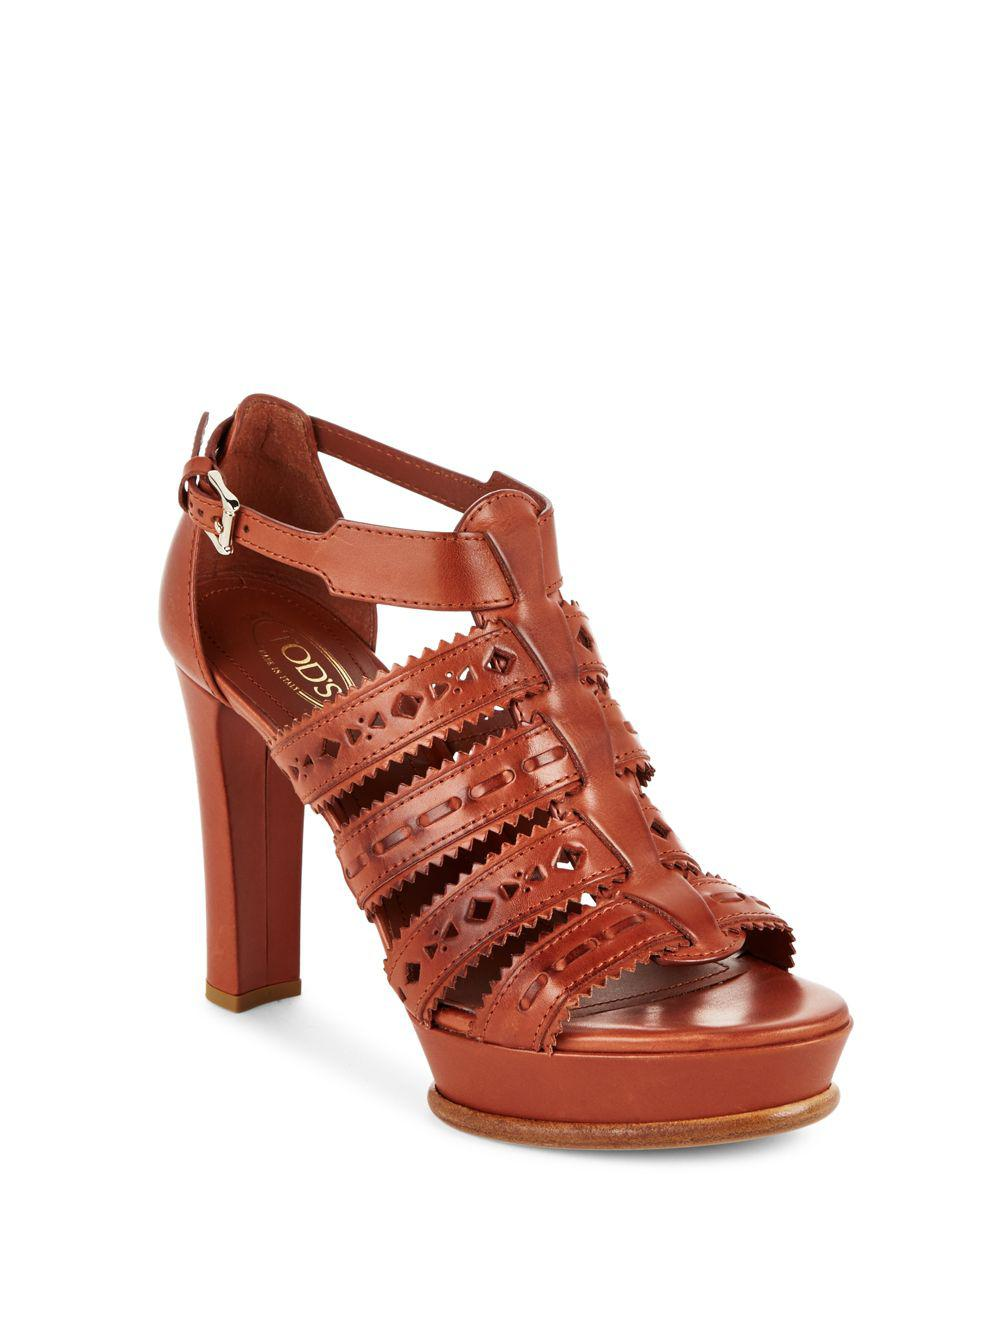 Aperlai Laser Cut Platform Sandals sale view factory outlet sale online new styles sale online 3IZSoGKN